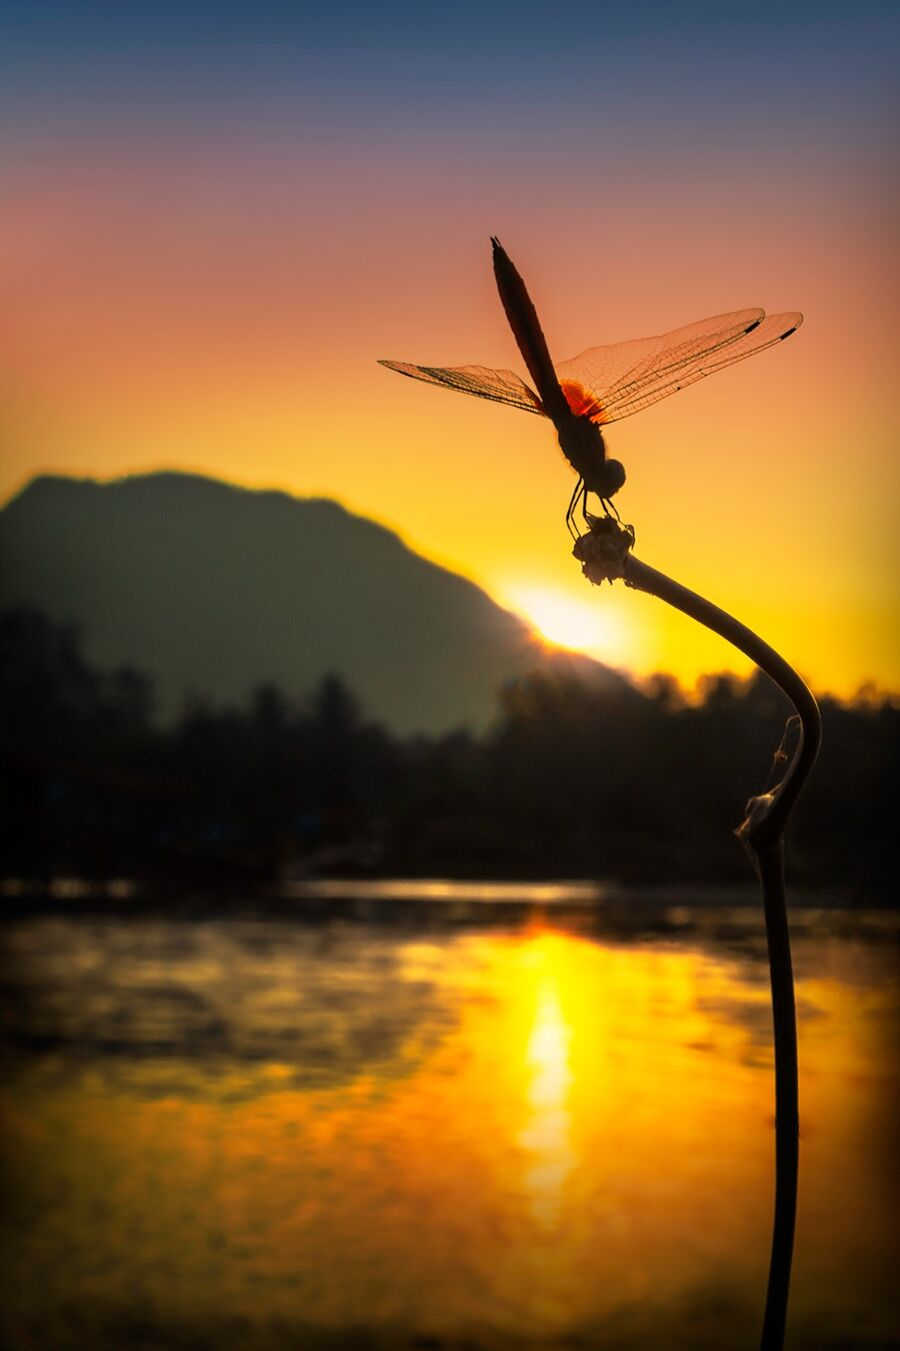 Dragonfly-sunset